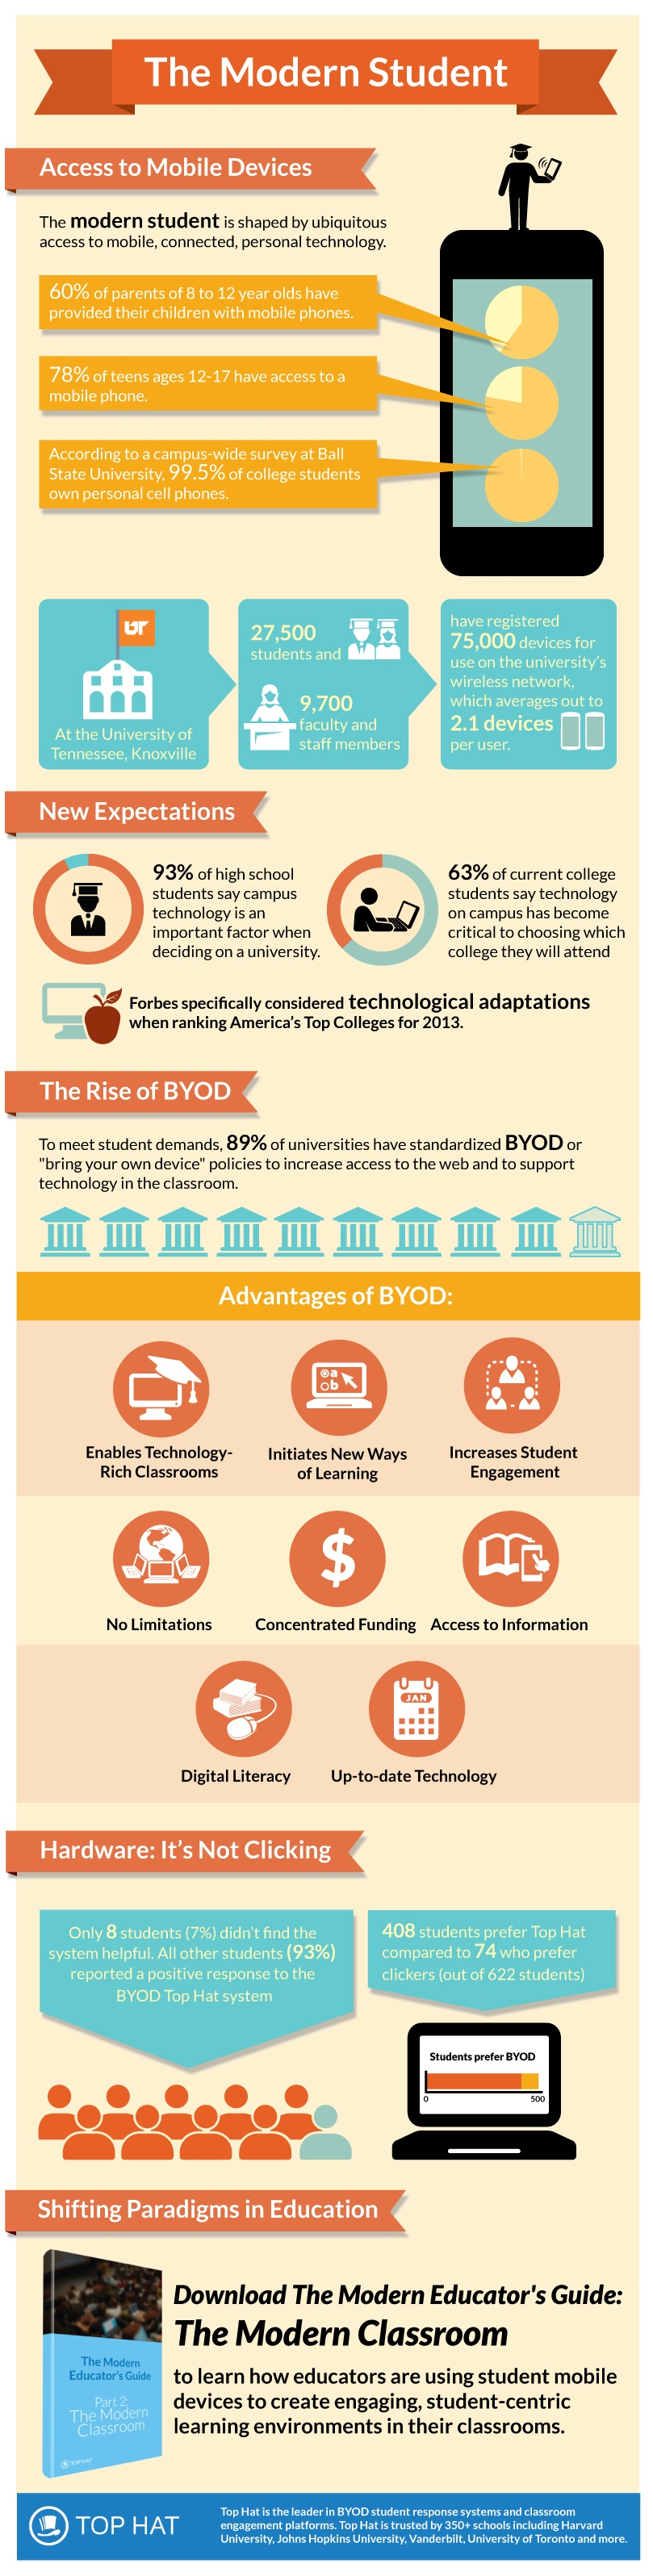 The-Modern-Student-Infographic